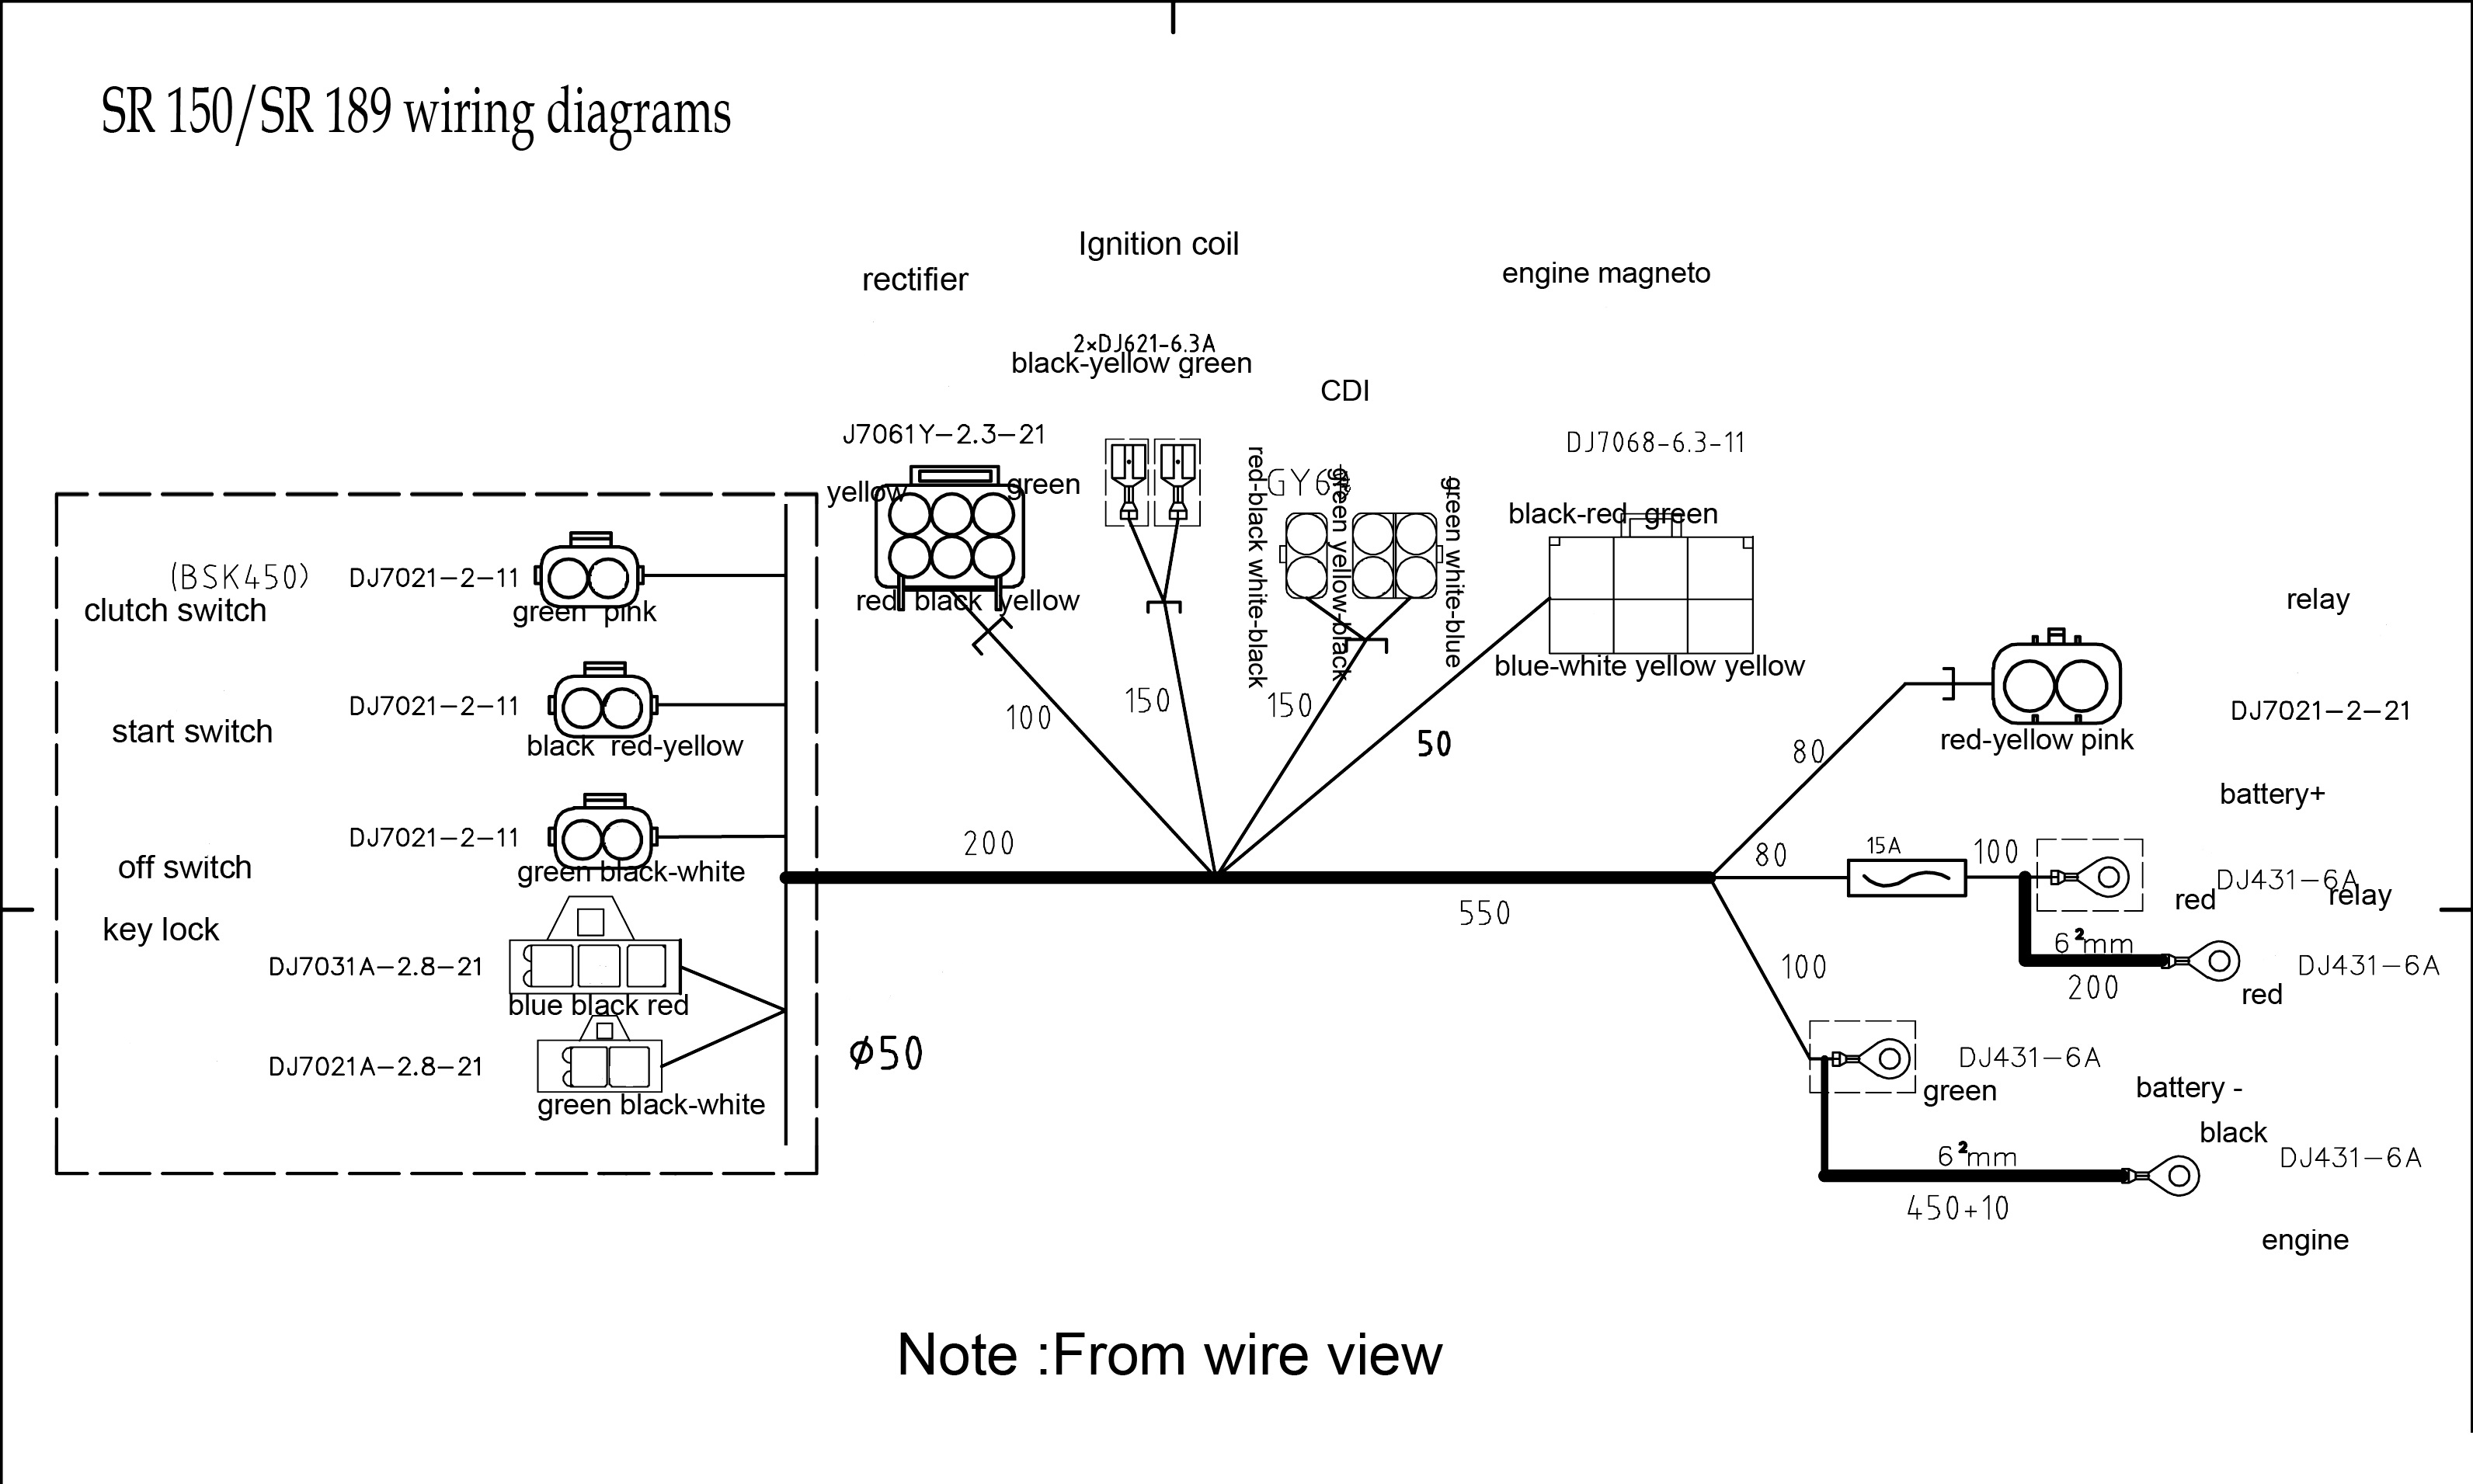 2004 Ssr Headlight Schematics Detailed Diagram 04 Chevy Wiring Diagrams Wire Ac Solid State Relay